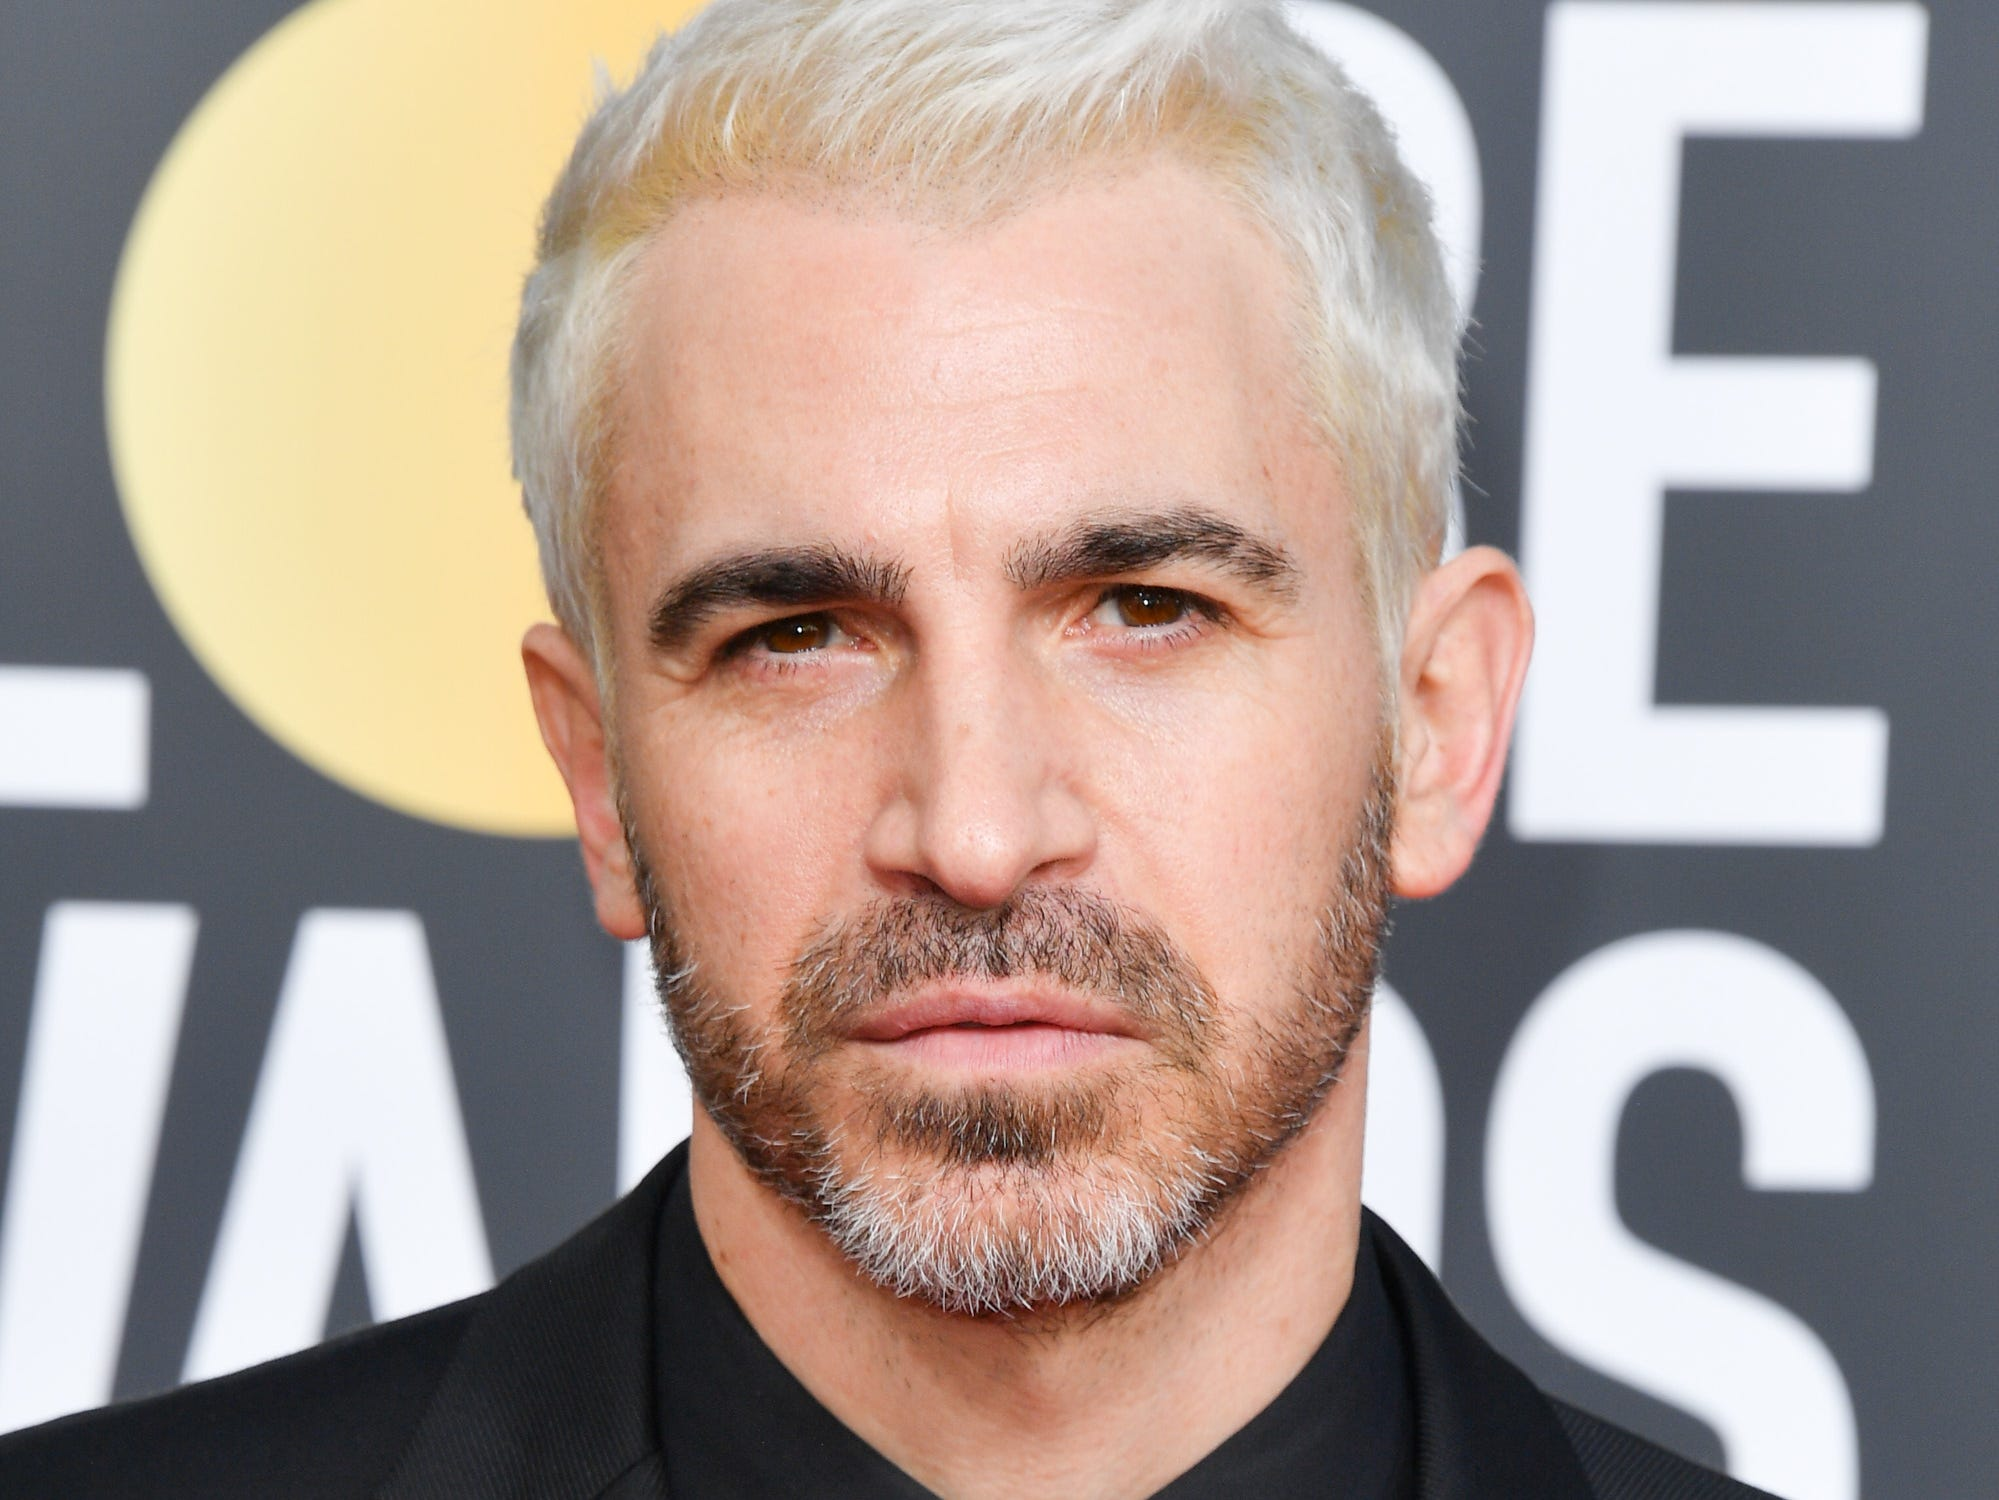 BEVERLY HILLS, CALIFORNIA - JANUARY 06: Chris Messina attends the 76th Annual Golden Globe Awards held at The Beverly Hilton Hotel on January 06, 2019 in Beverly Hills, California. (Photo by George Pimentel/WireImage) ORG XMIT: 775268382 ORIG FILE ID: 1090659050